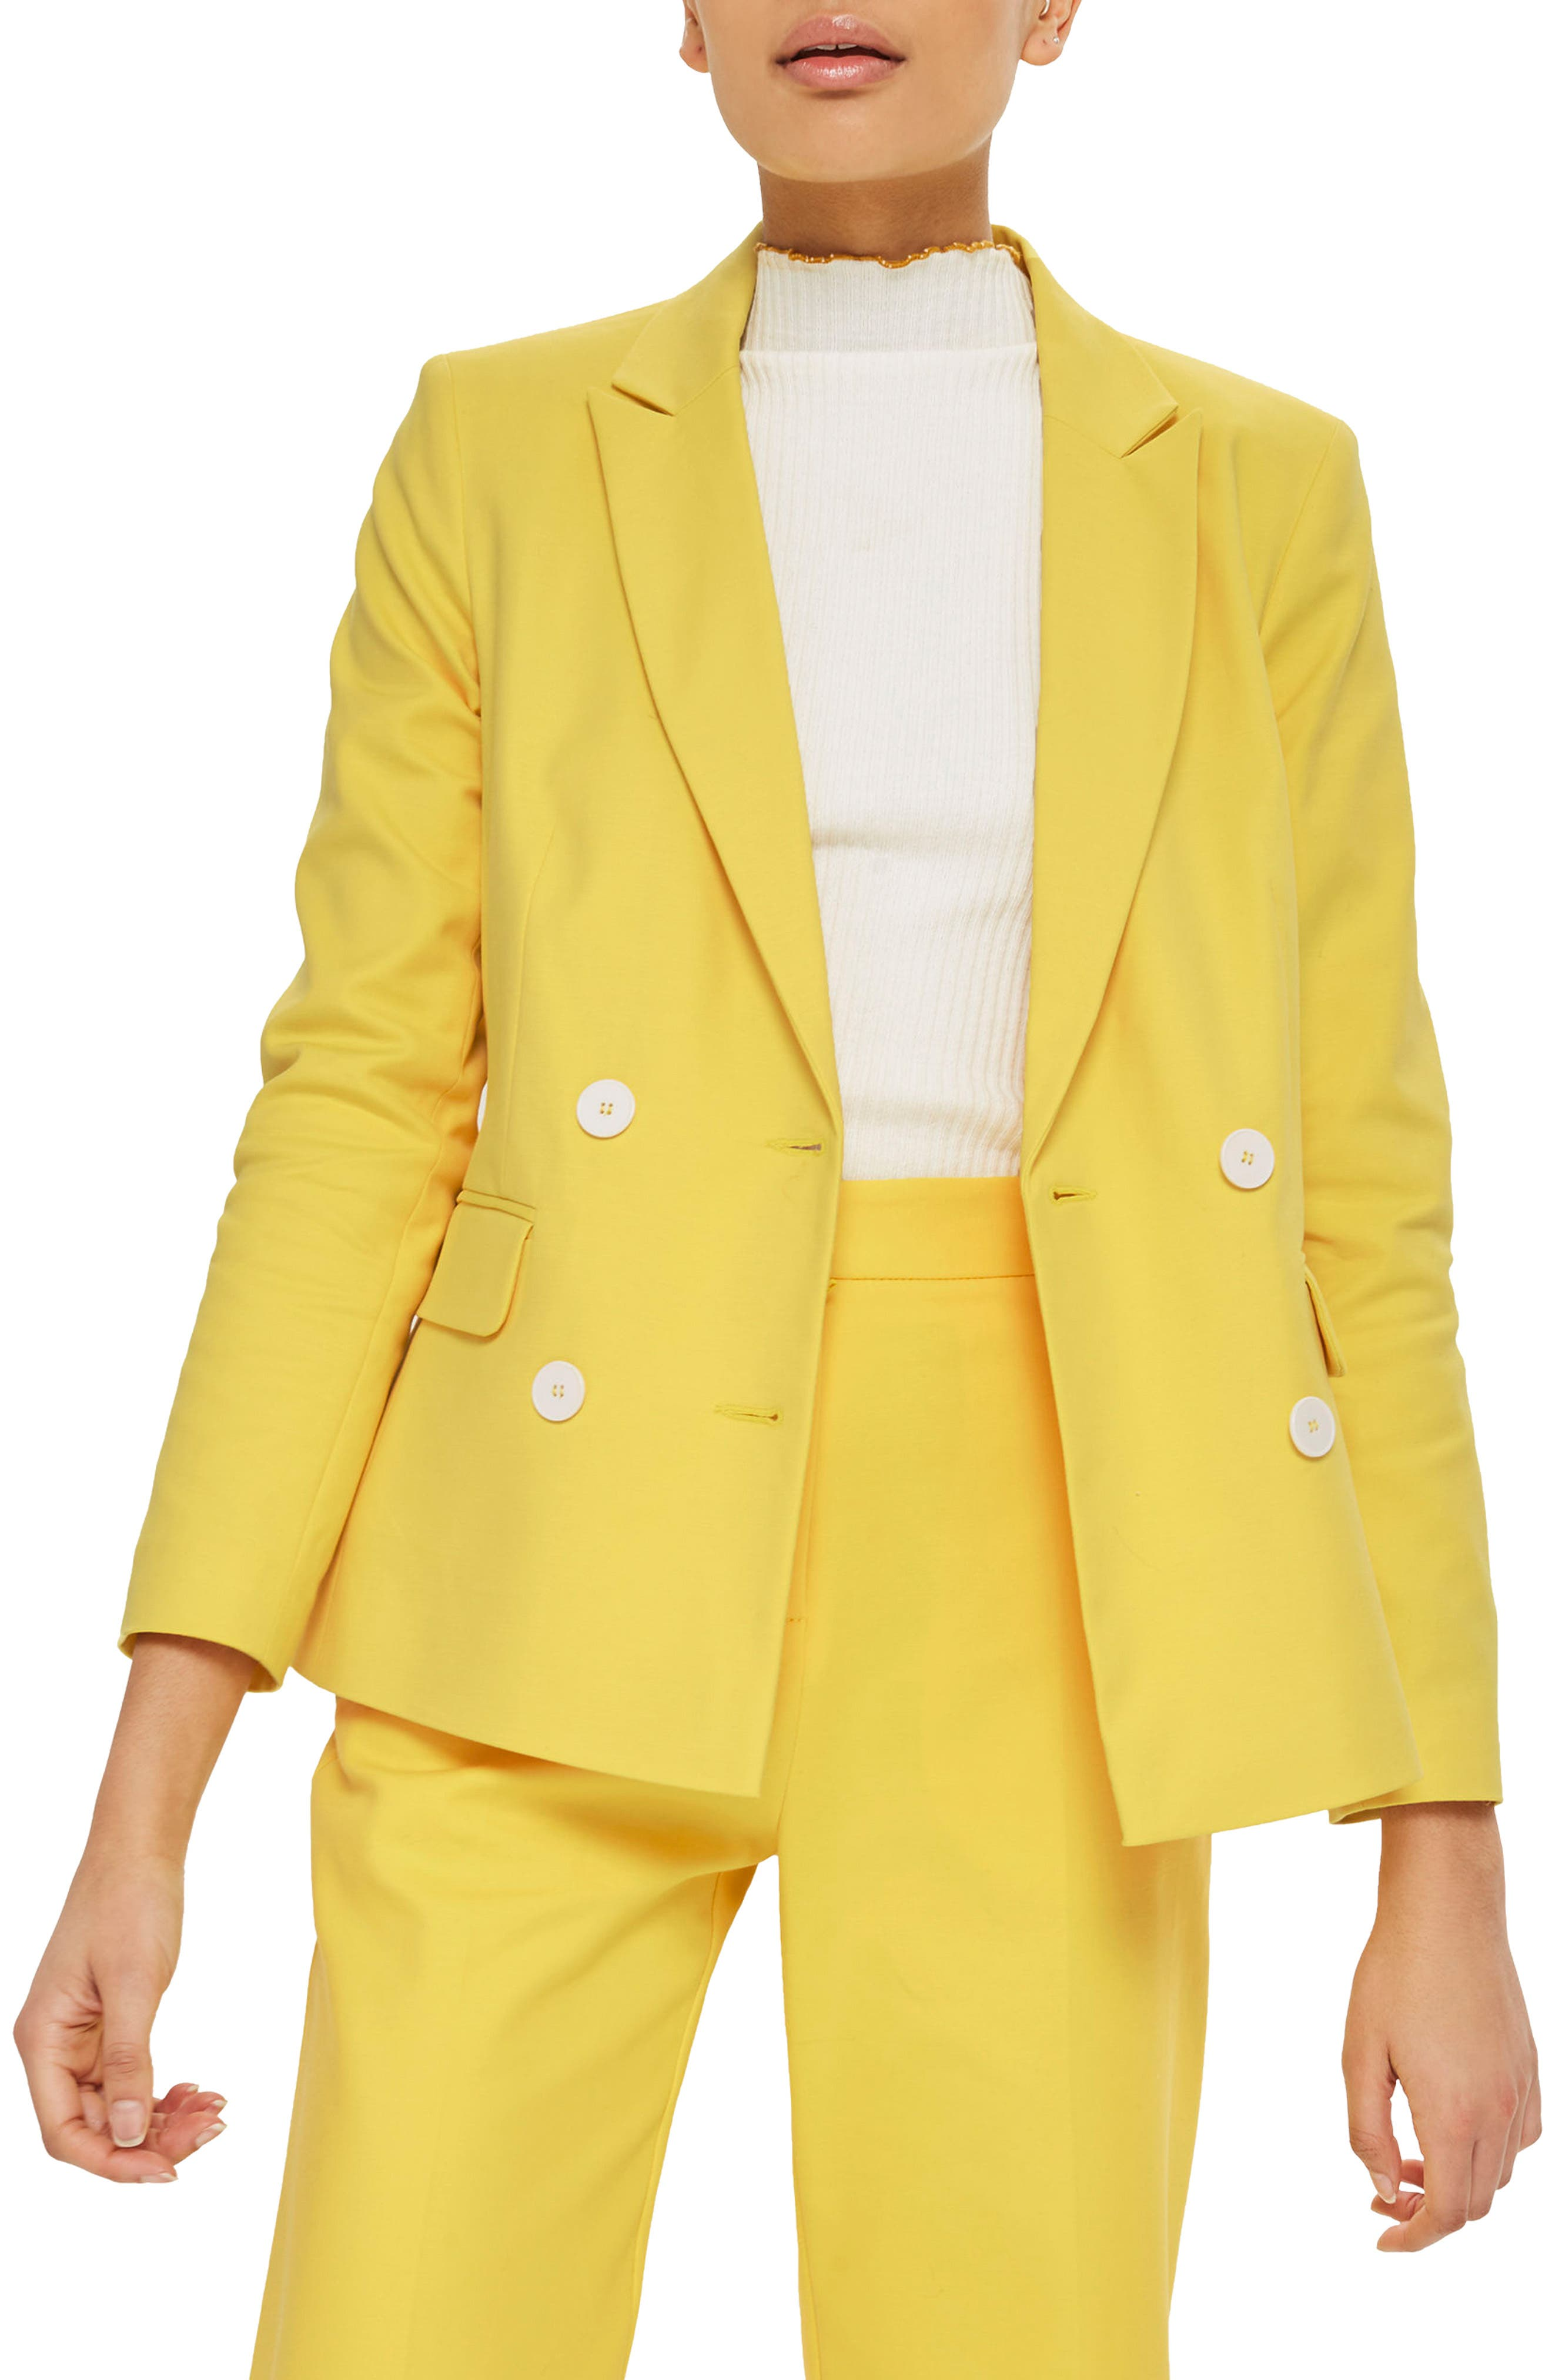 Milly Double Breasted Suit Jacket,                             Main thumbnail 1, color,                             700